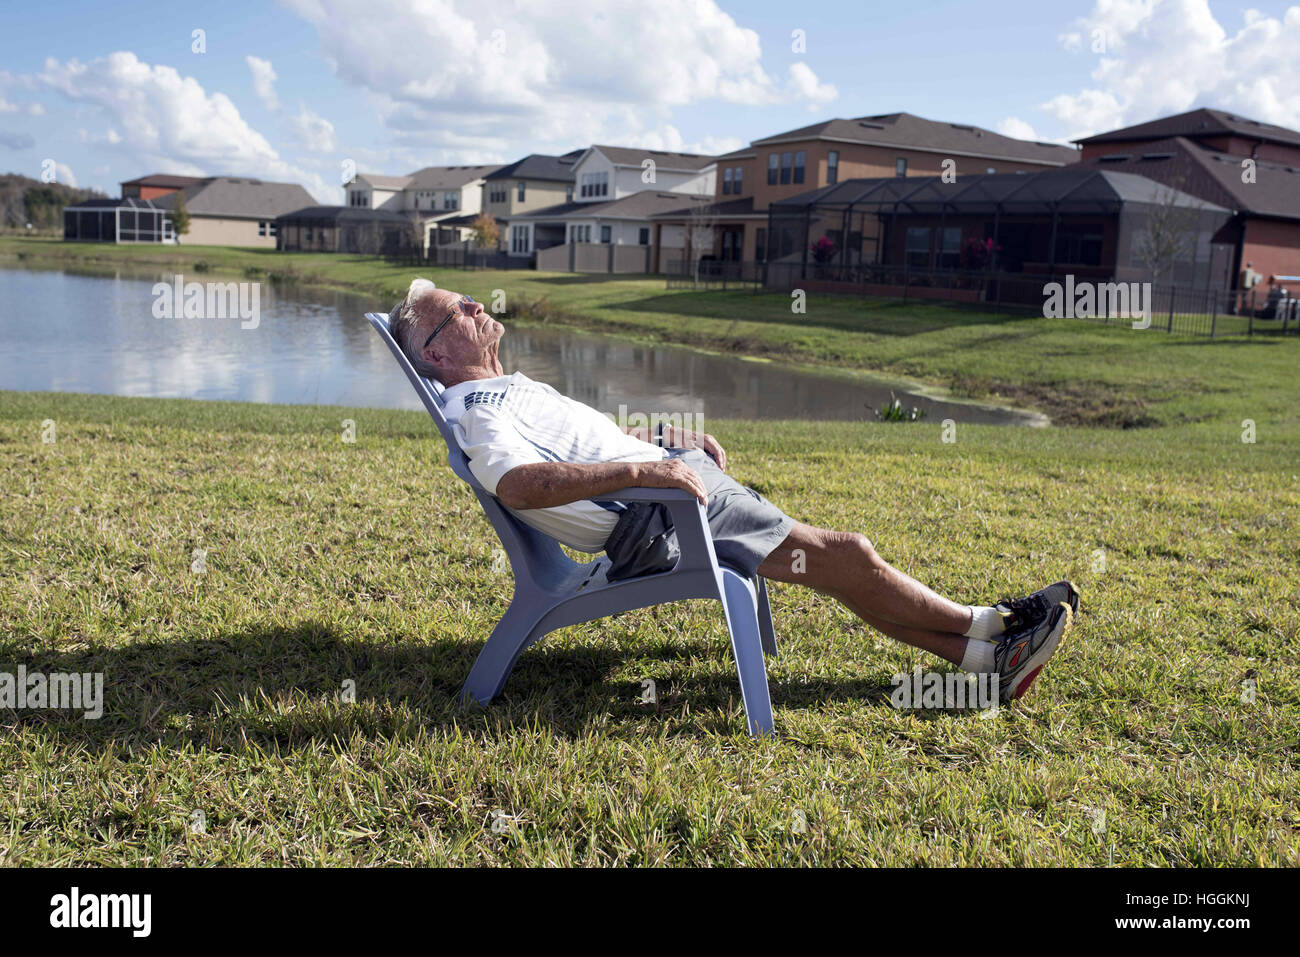 Wesley Chapel, FL, USA. 24th Dec, 2016. Retired executive his 80s relaxes in sunshine outside new home in a suburban - Stock Image